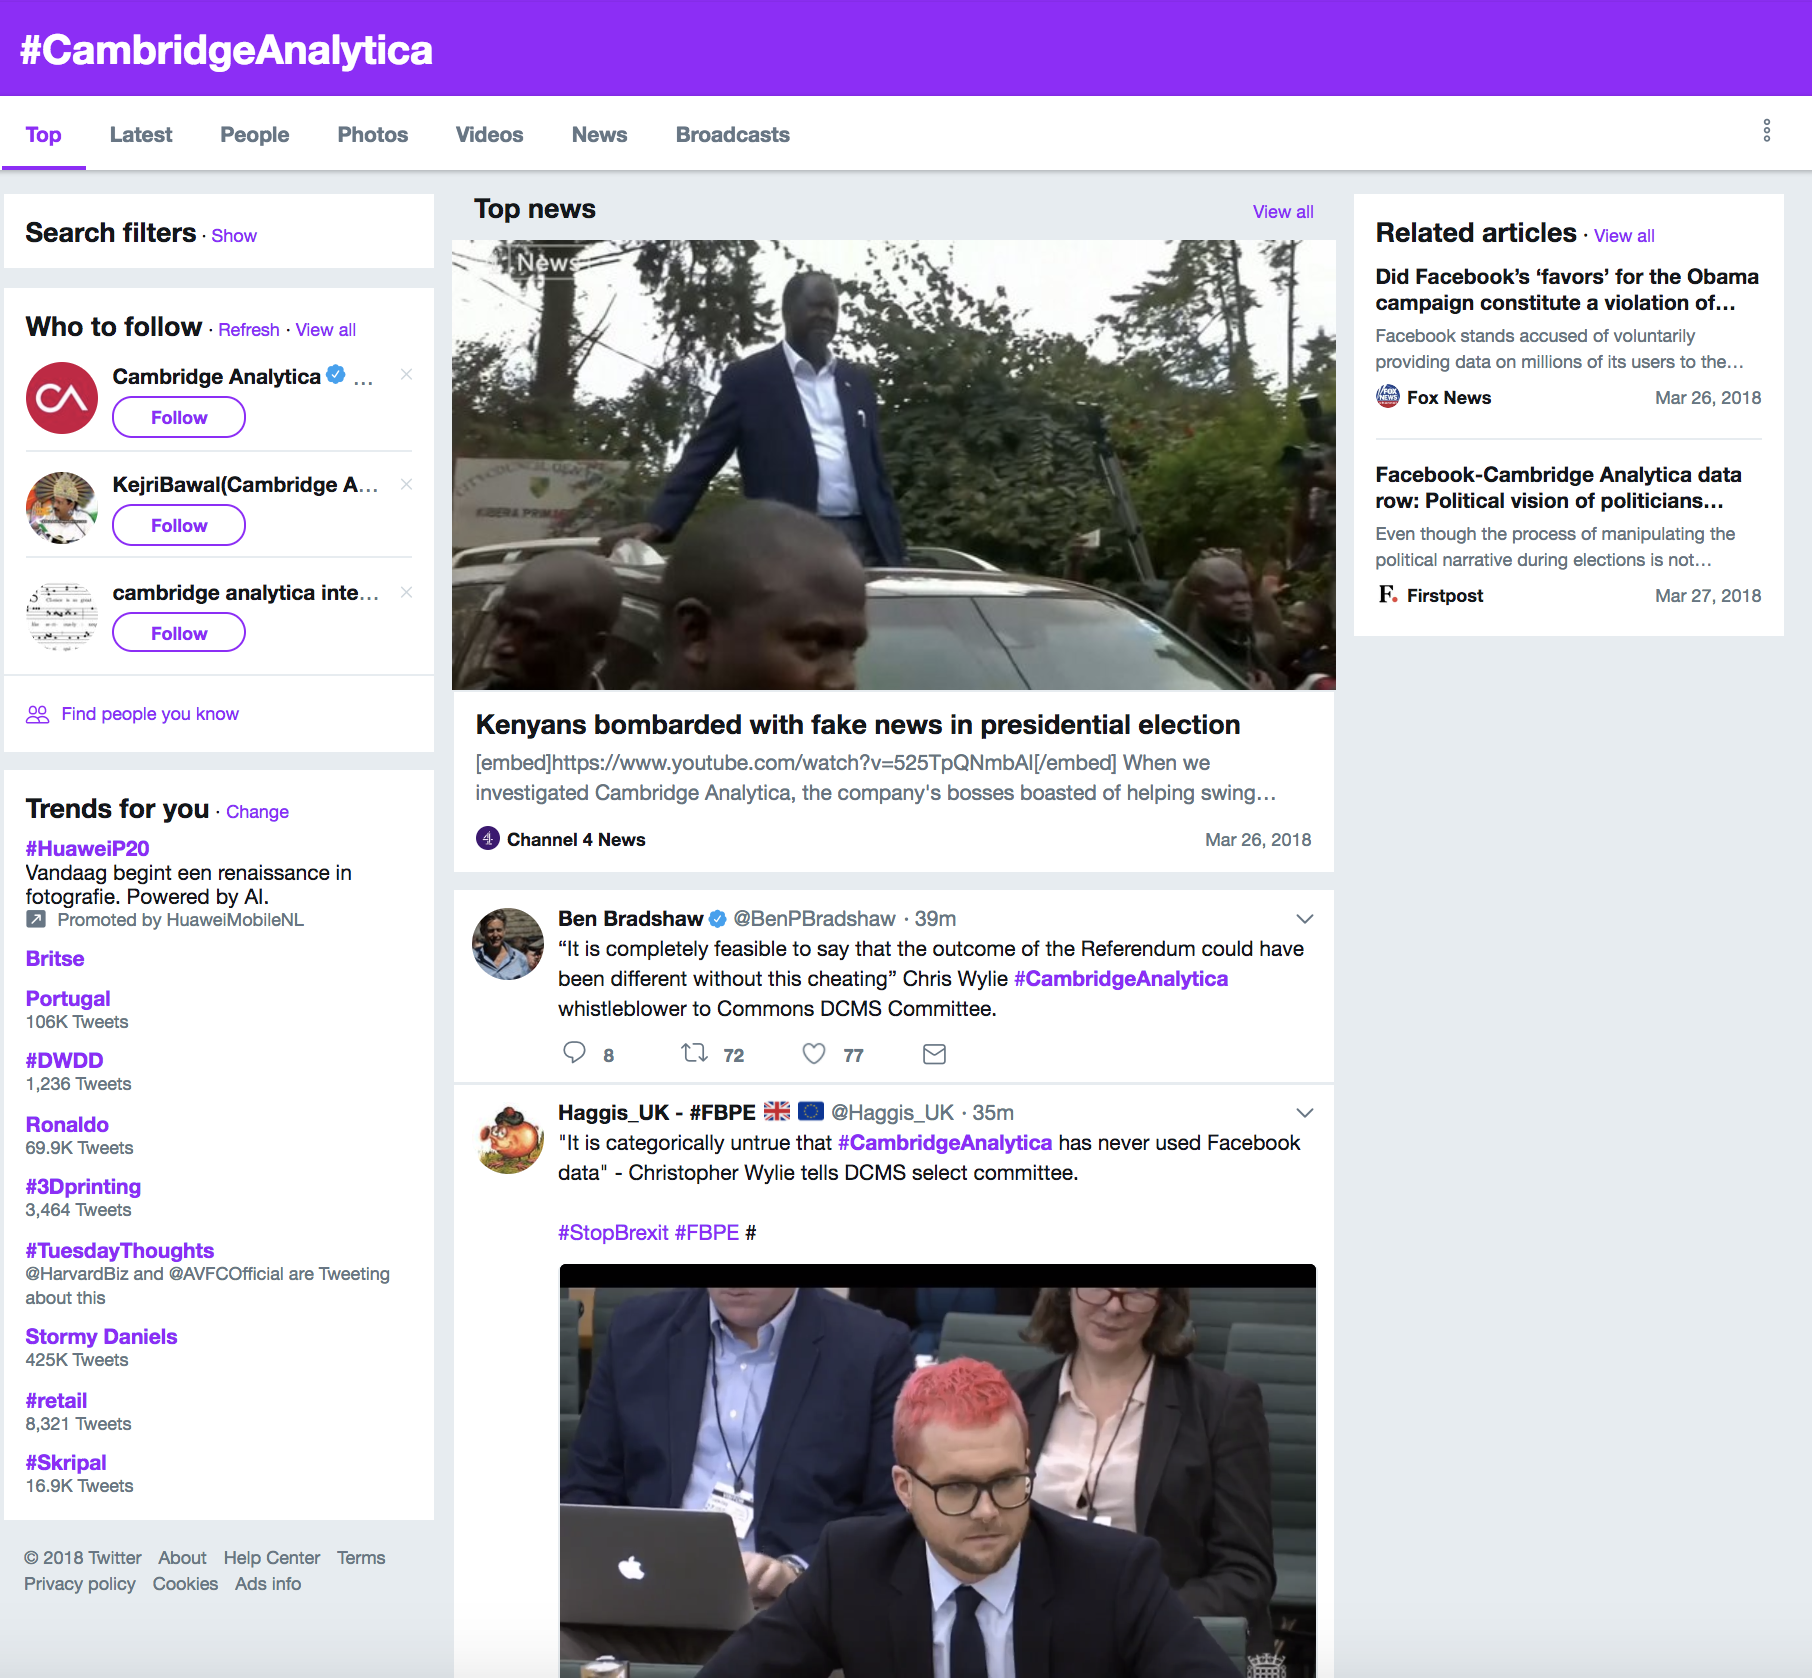 Screenshot Twitter; Rolling news updates on #CambridgeAnalytica as it happens on Twitter